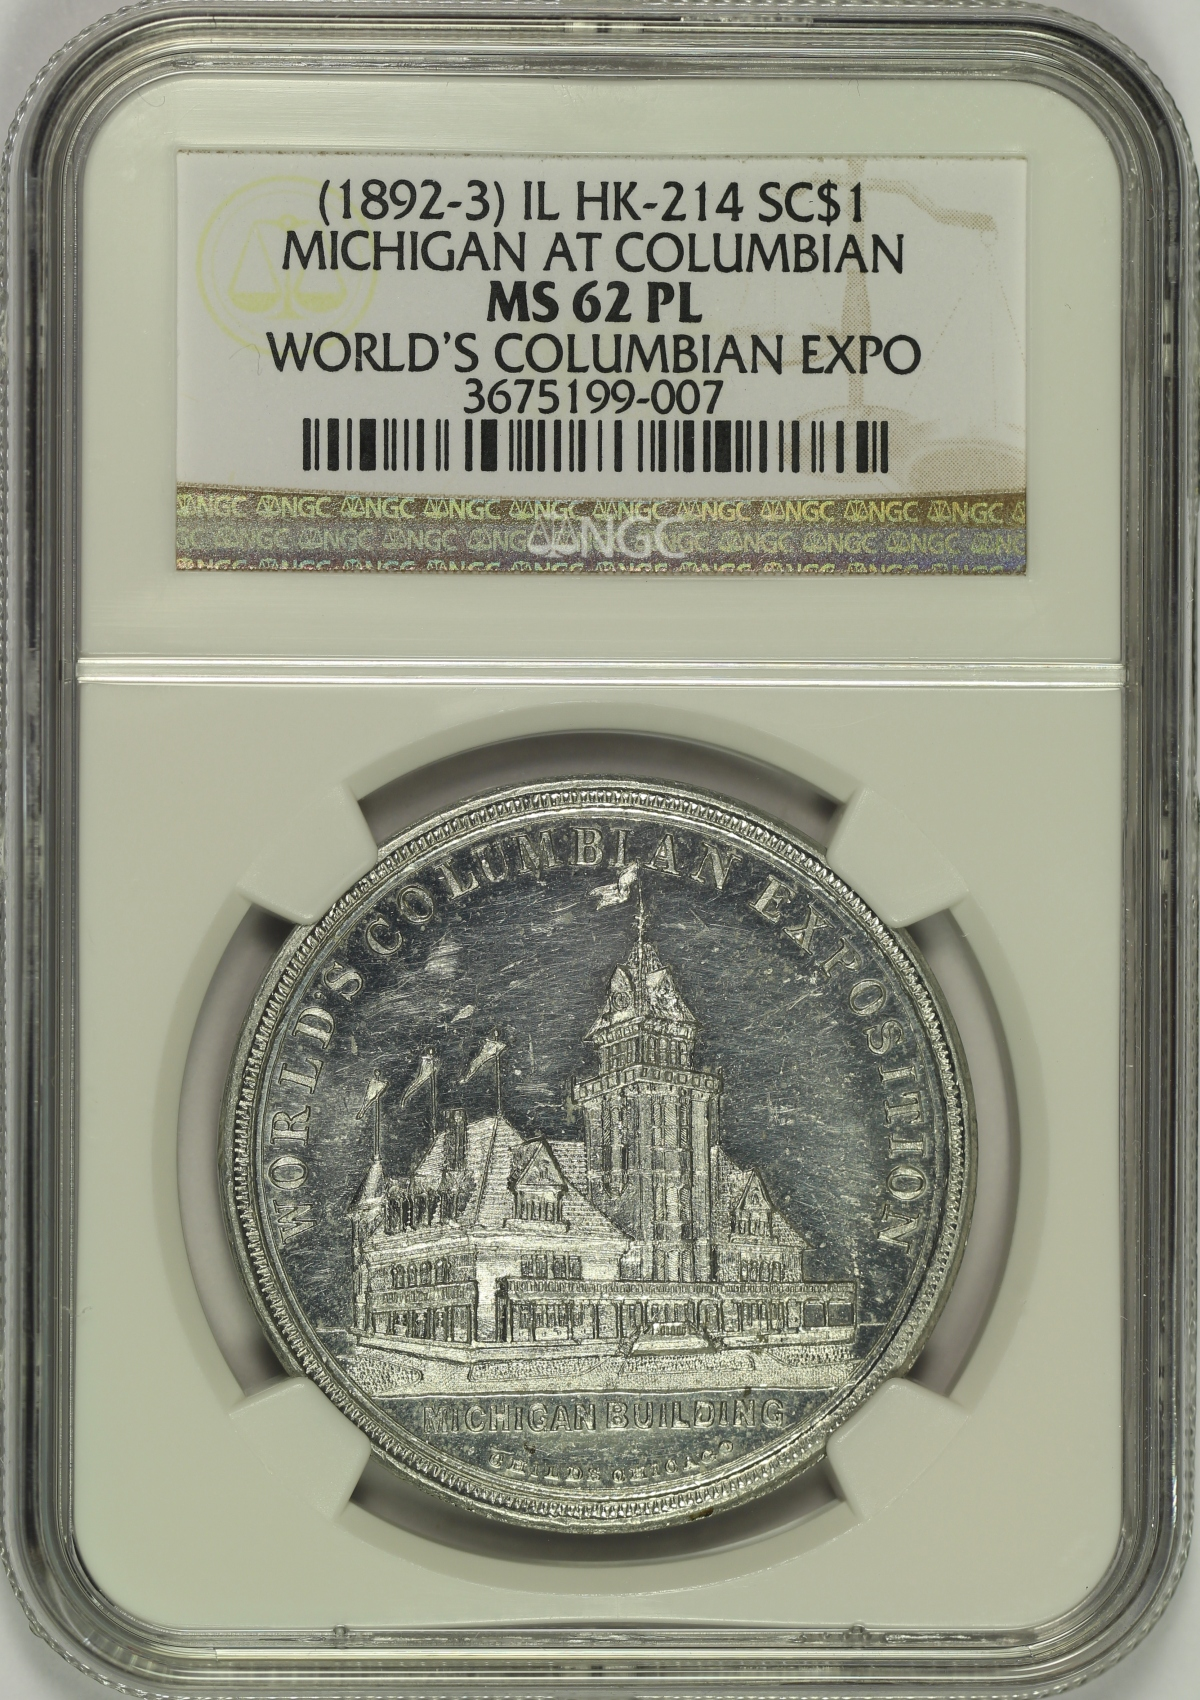 Michael Kittle Rare Coins - 1893 Columbian Expo Michigan ...